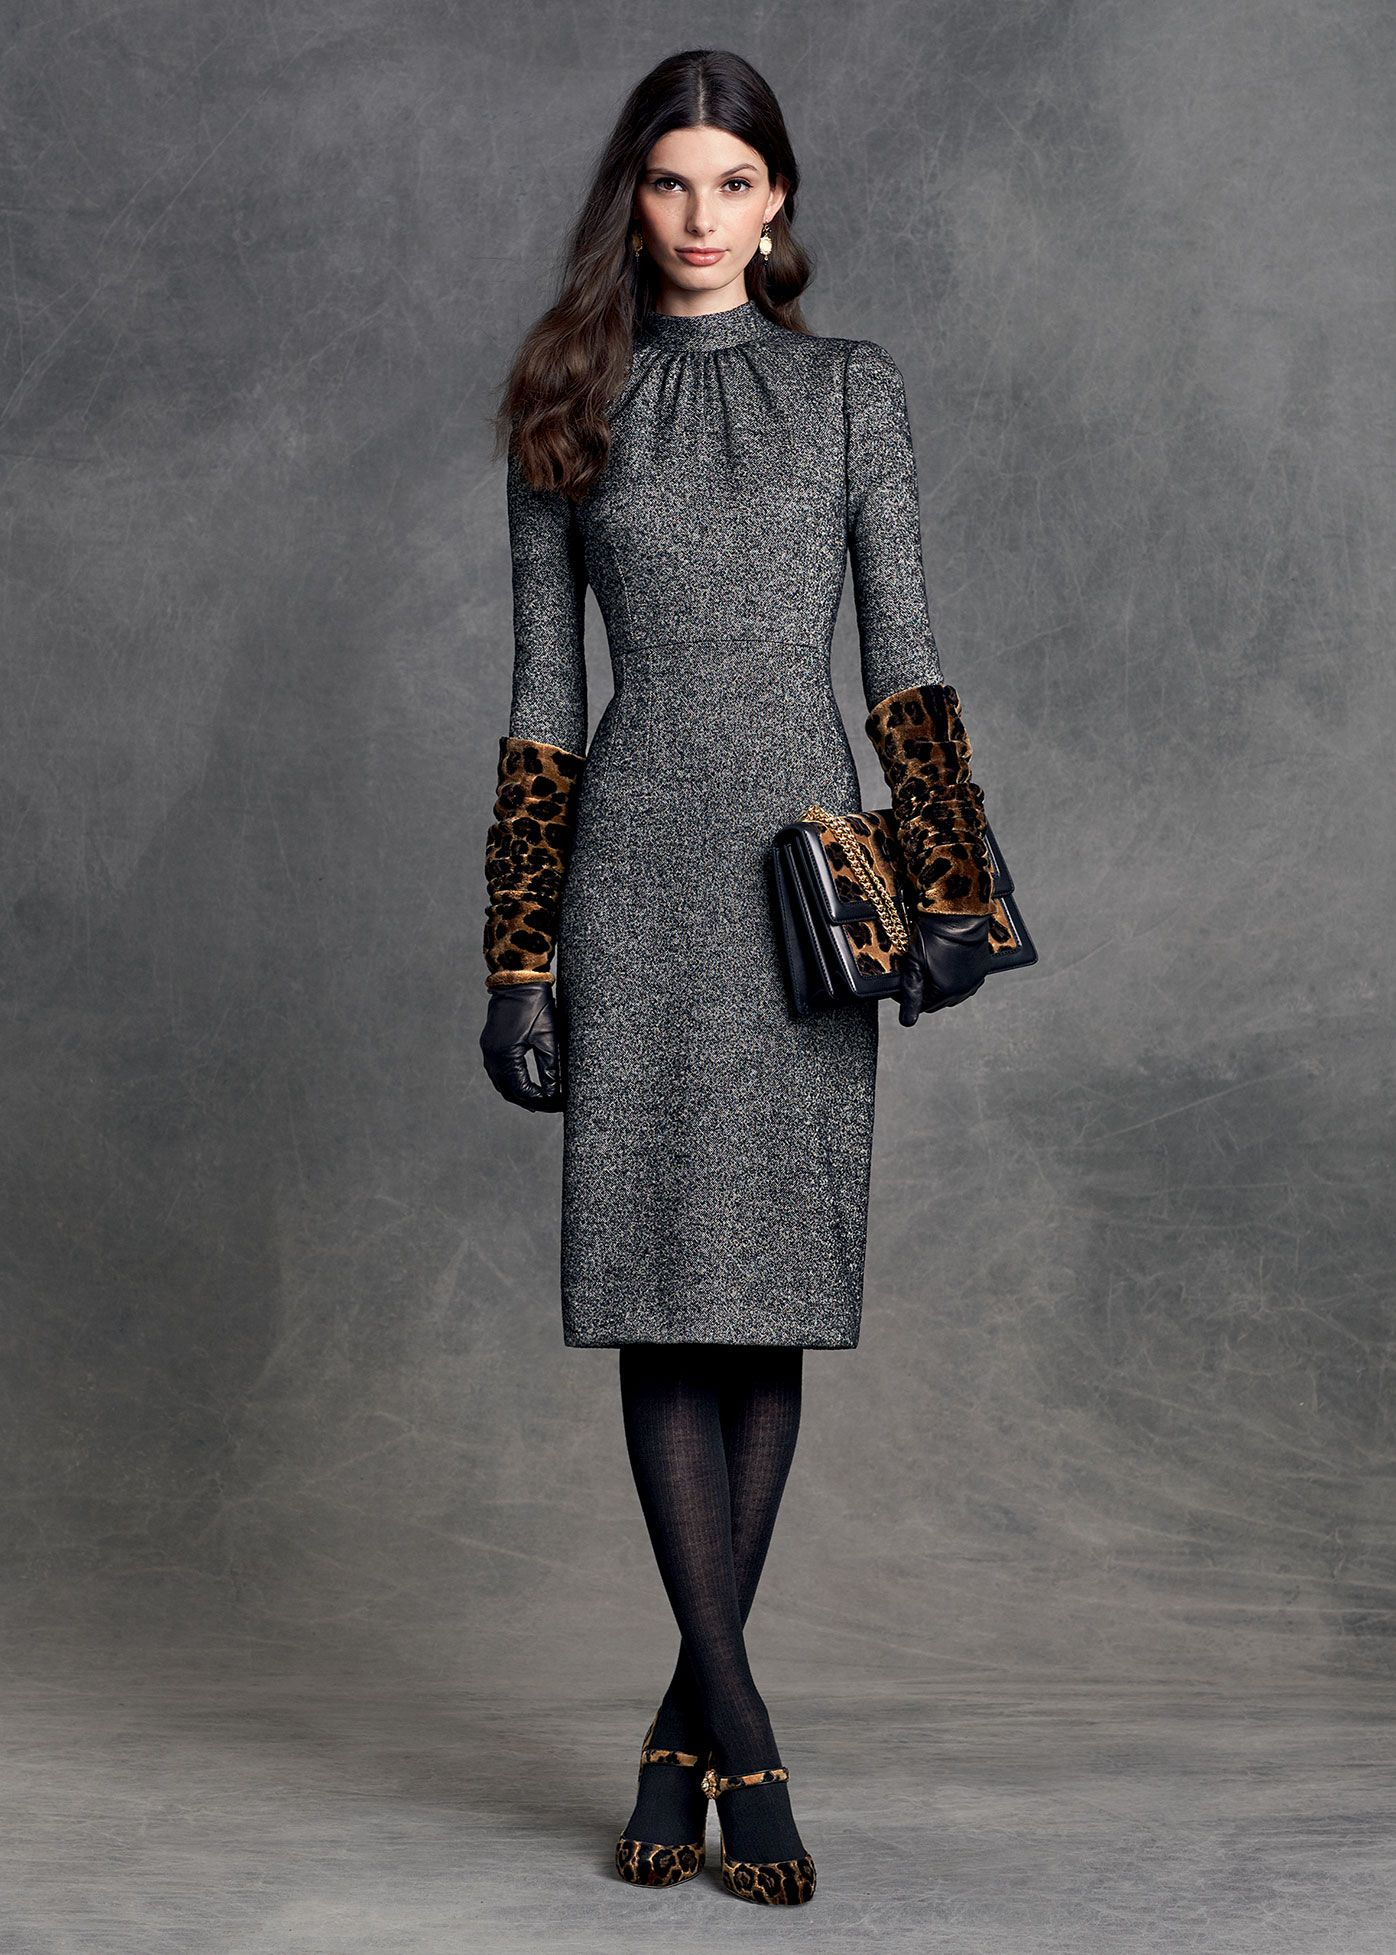 collar and bodice: How does this dress look in motion/arms moving? Dolce